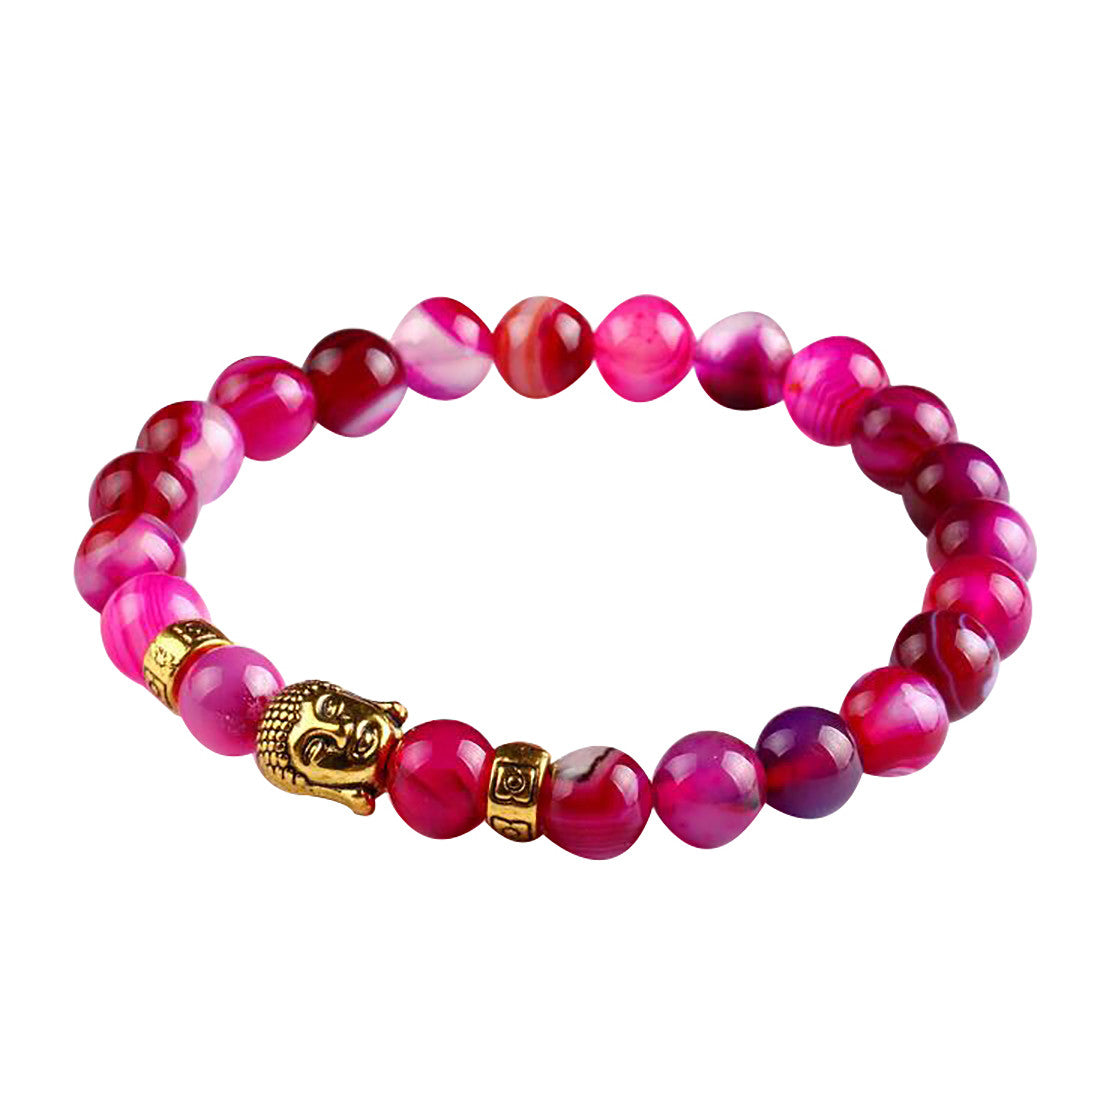 Buddha Beads Bracelets - awashdress